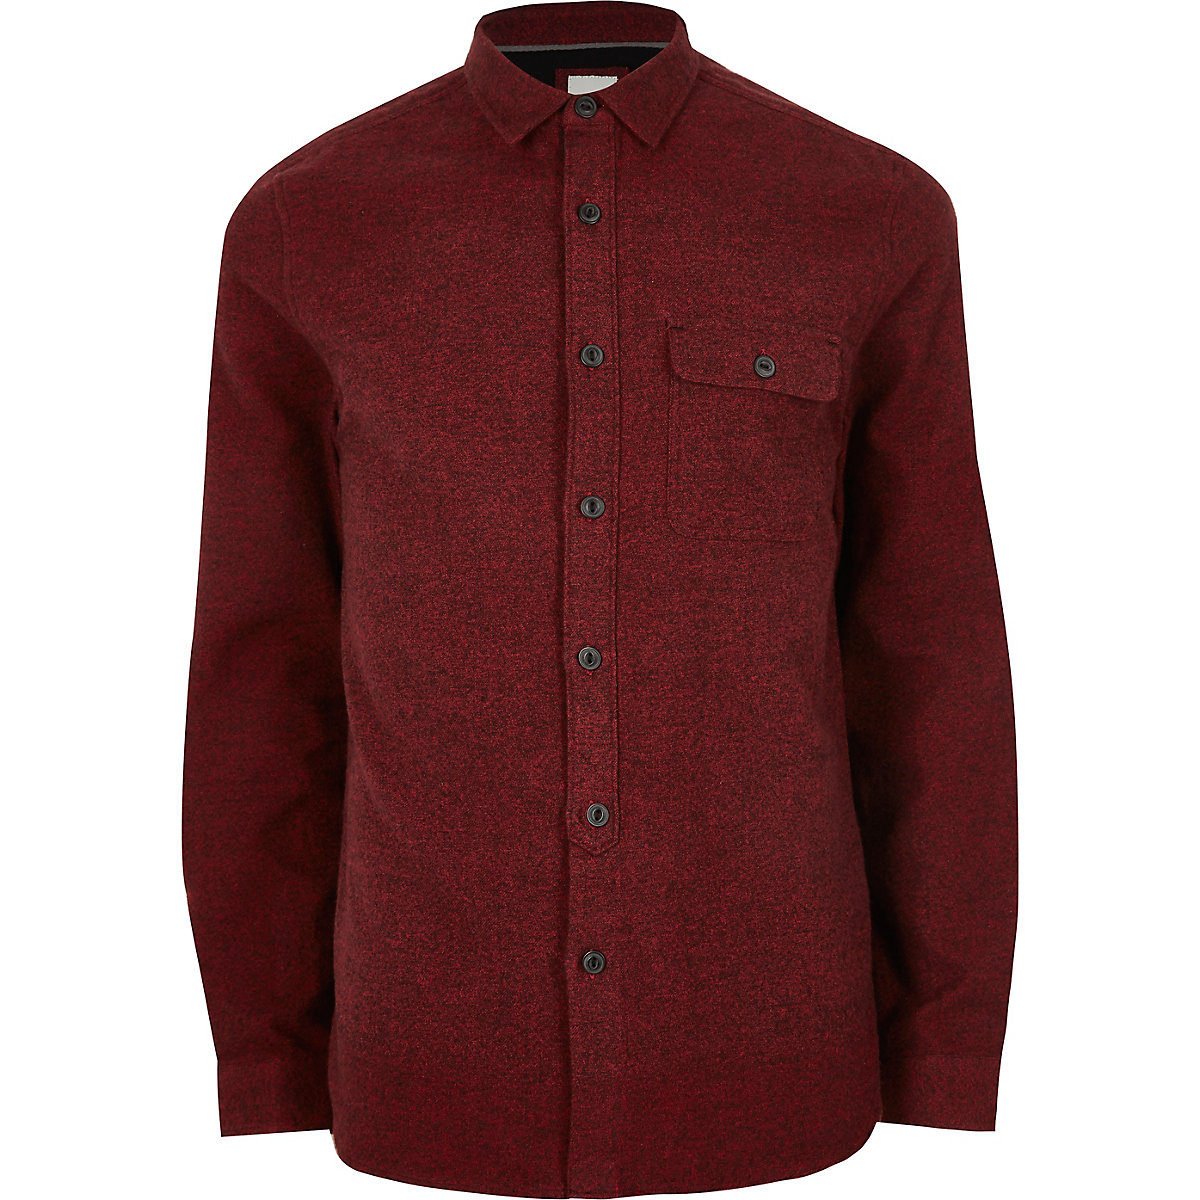 Dark red long sleeve chest pocket shirt - Long Sleeve Shirts - Shirts - men edabfba2879